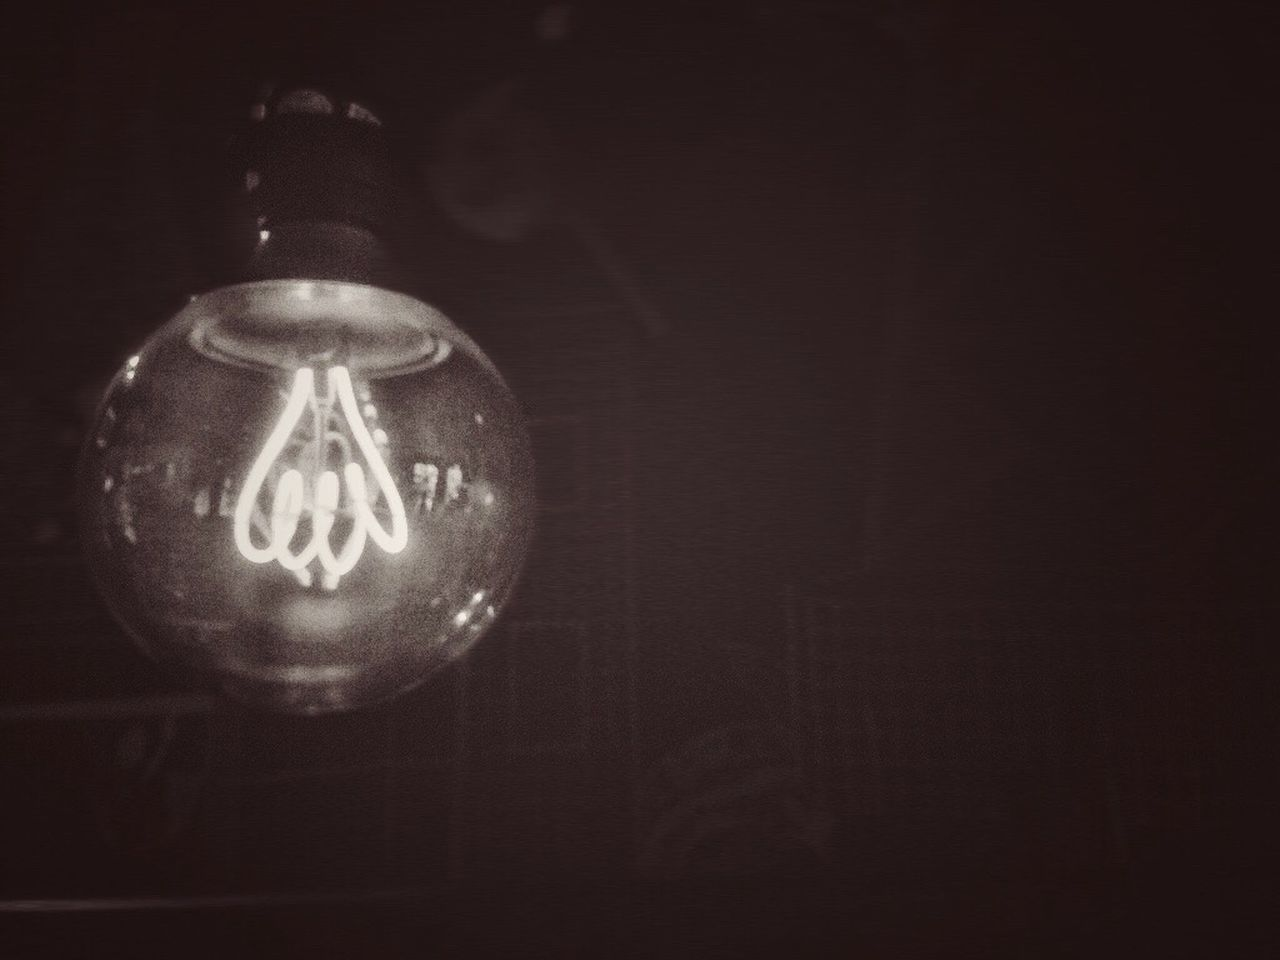 indoors, no people, hanging, single object, close-up, electricity, light bulb, illuminated, day